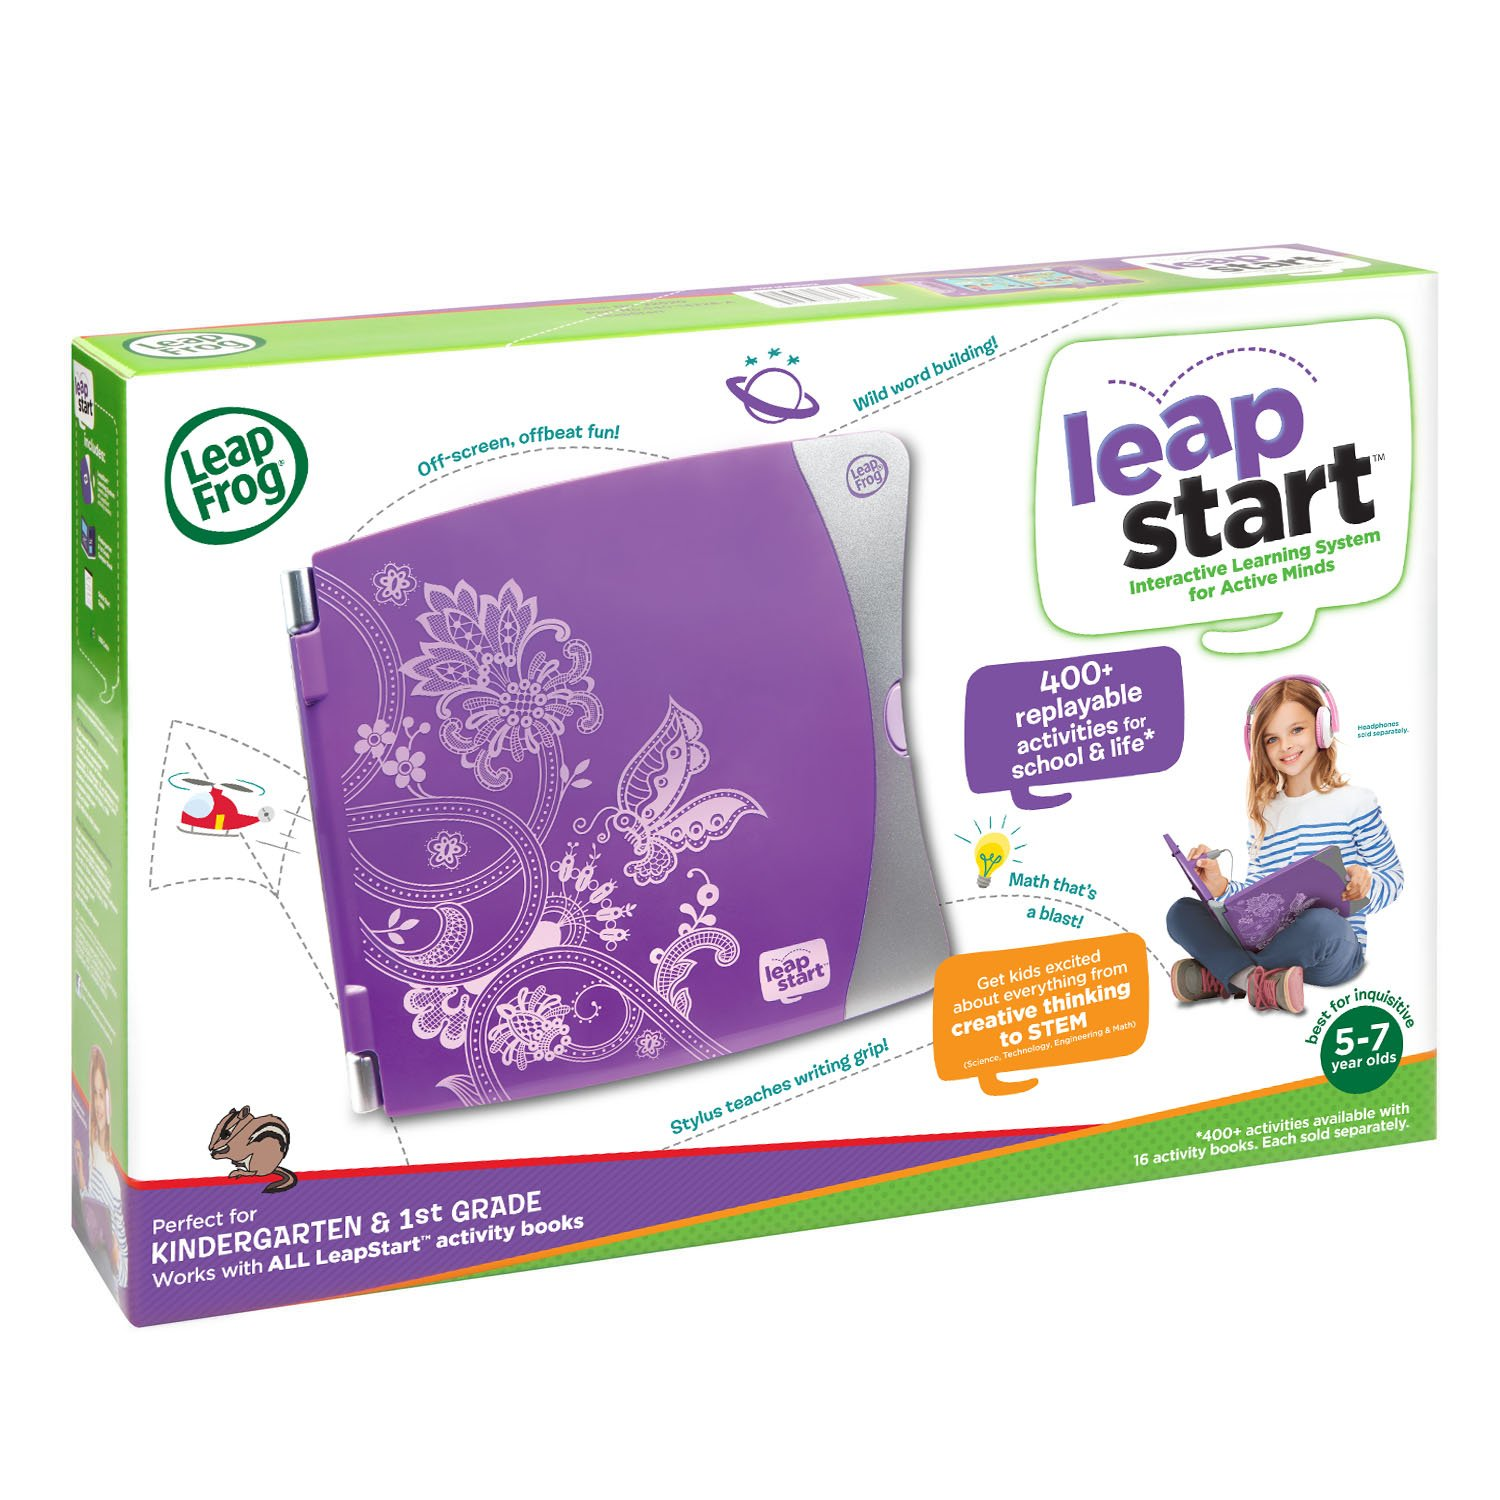 LeapFrog LeapStart Interactive Learning System Kindergarten and 1st Grade Amazon Exclusive by LeapFrog (Image #6)